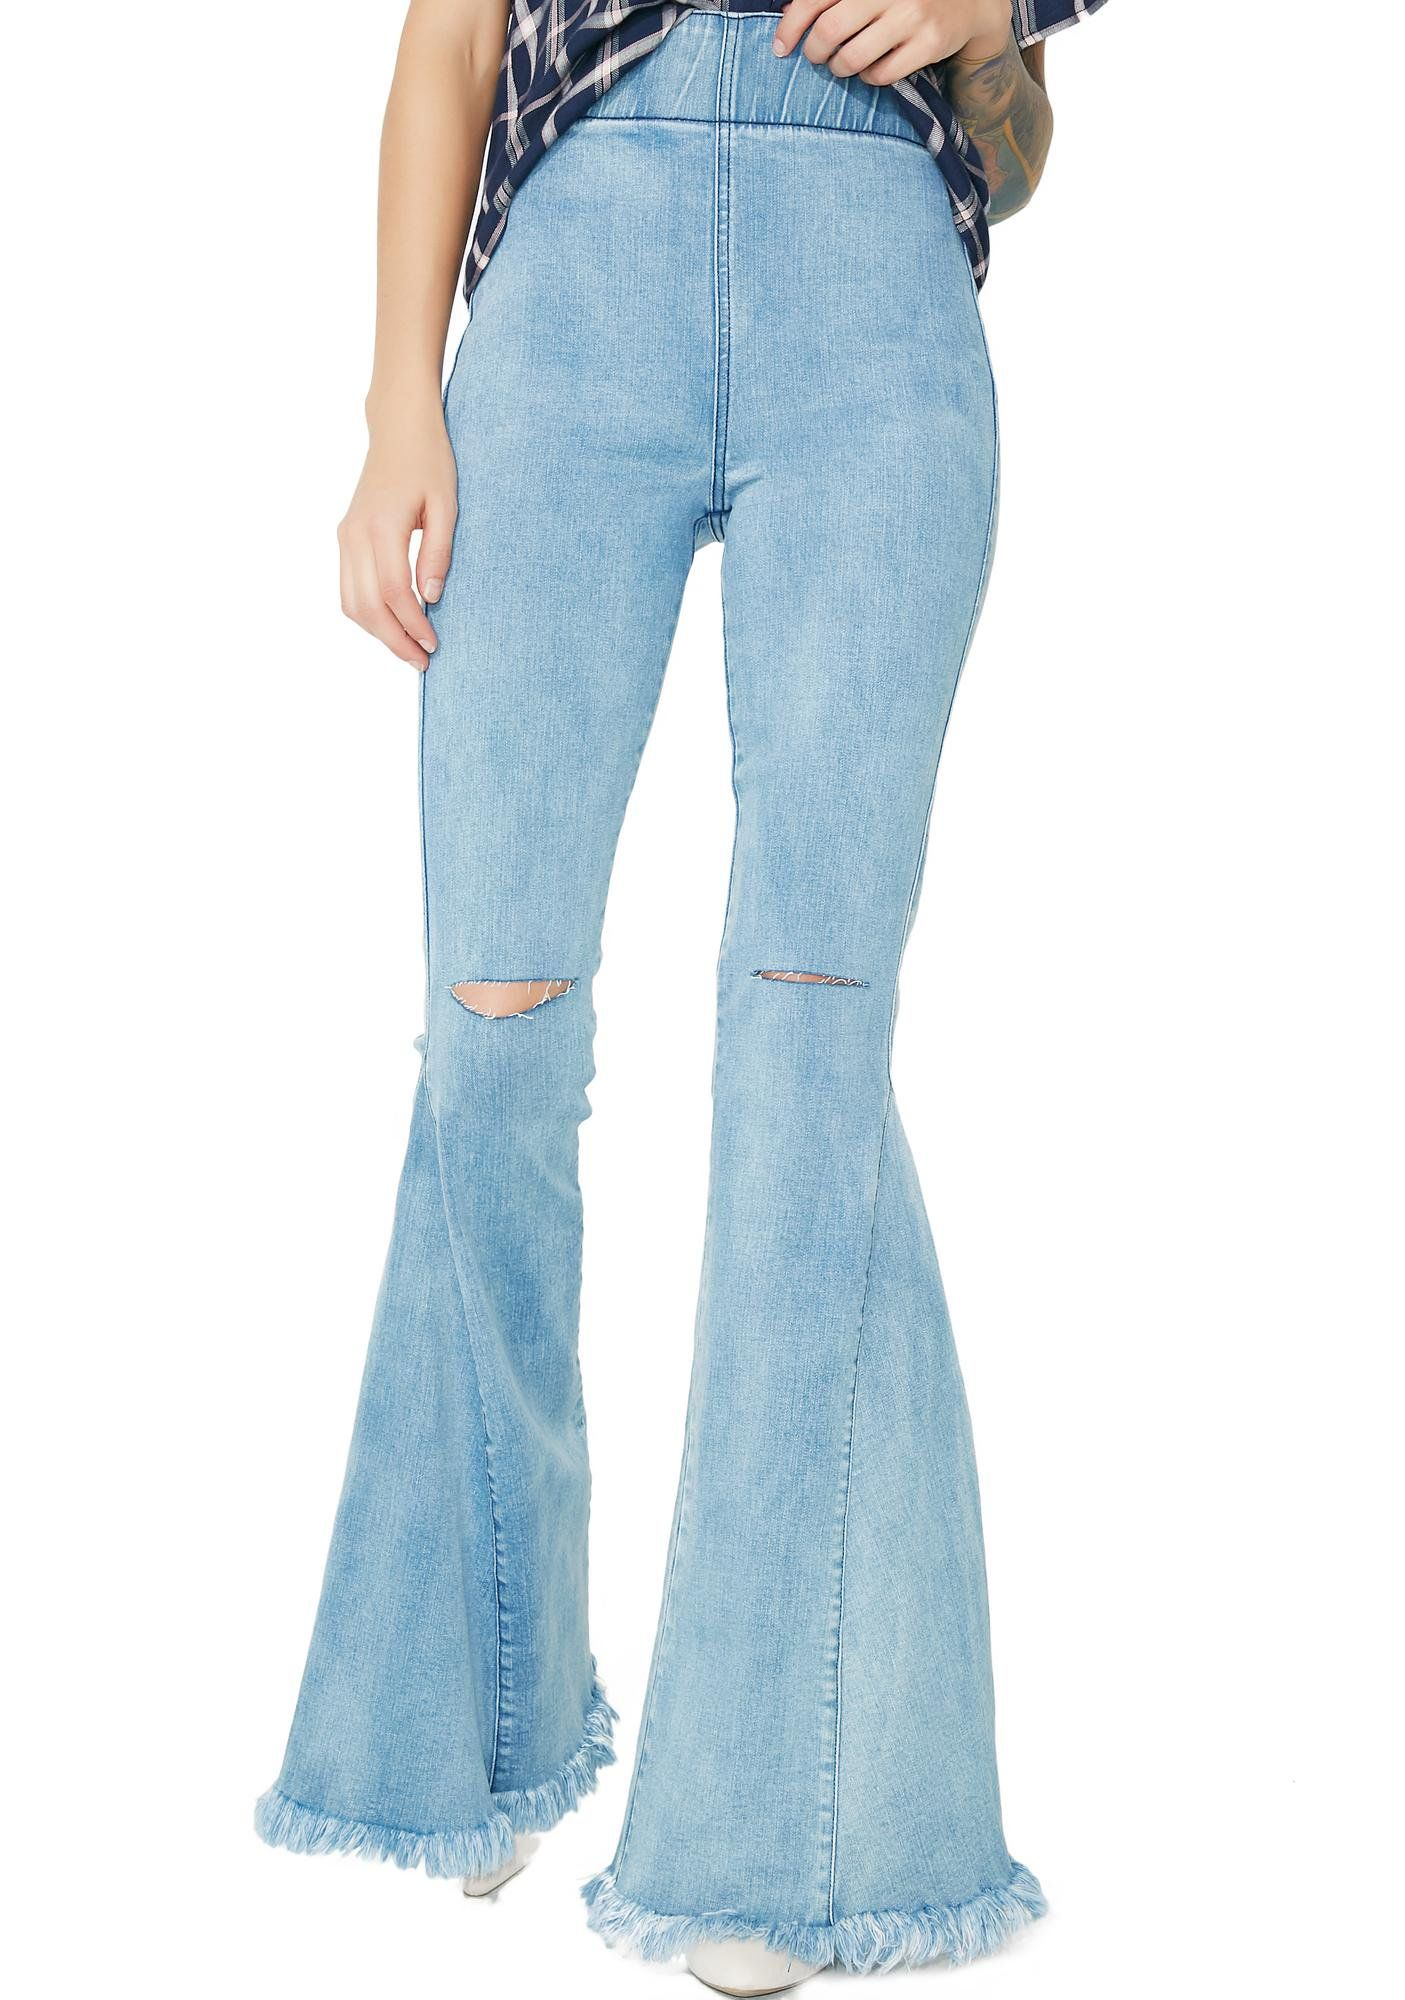 Cloud Nine Ring My Bell Flared Pants | Denim flare jeans